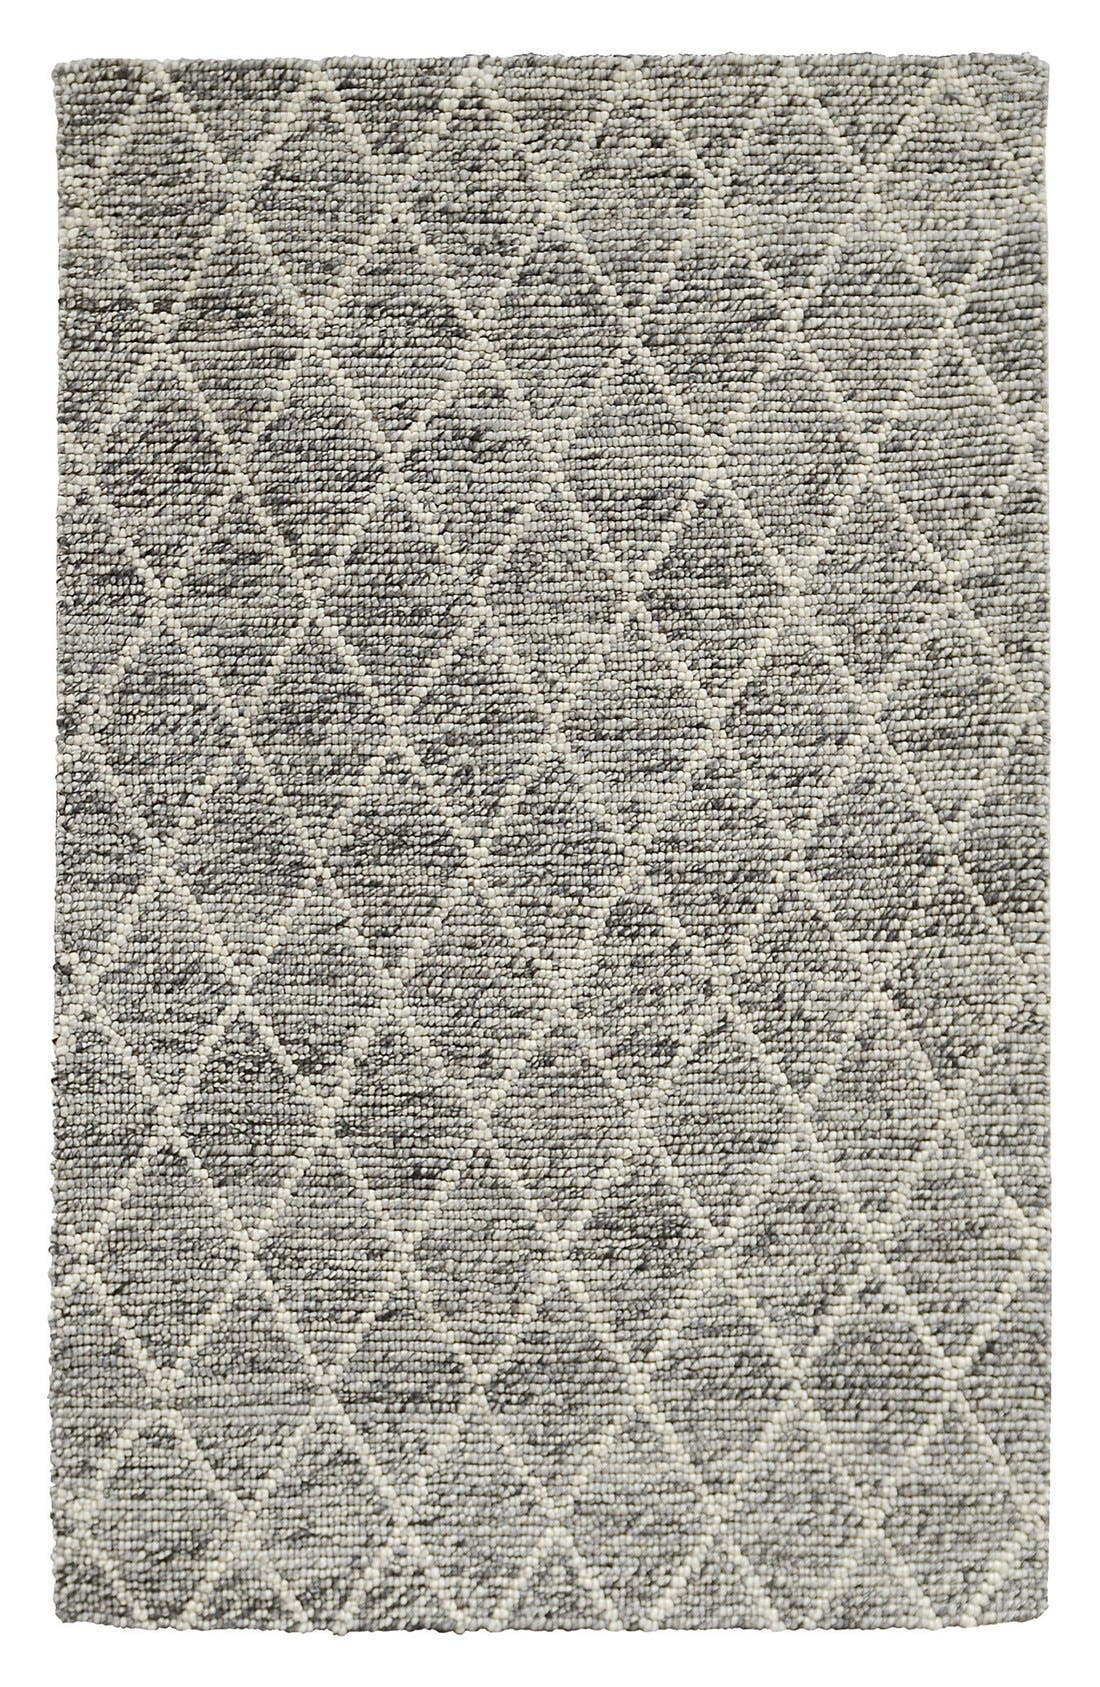 Hand Tufted Wool Rug,                             Main thumbnail 1, color,                             020